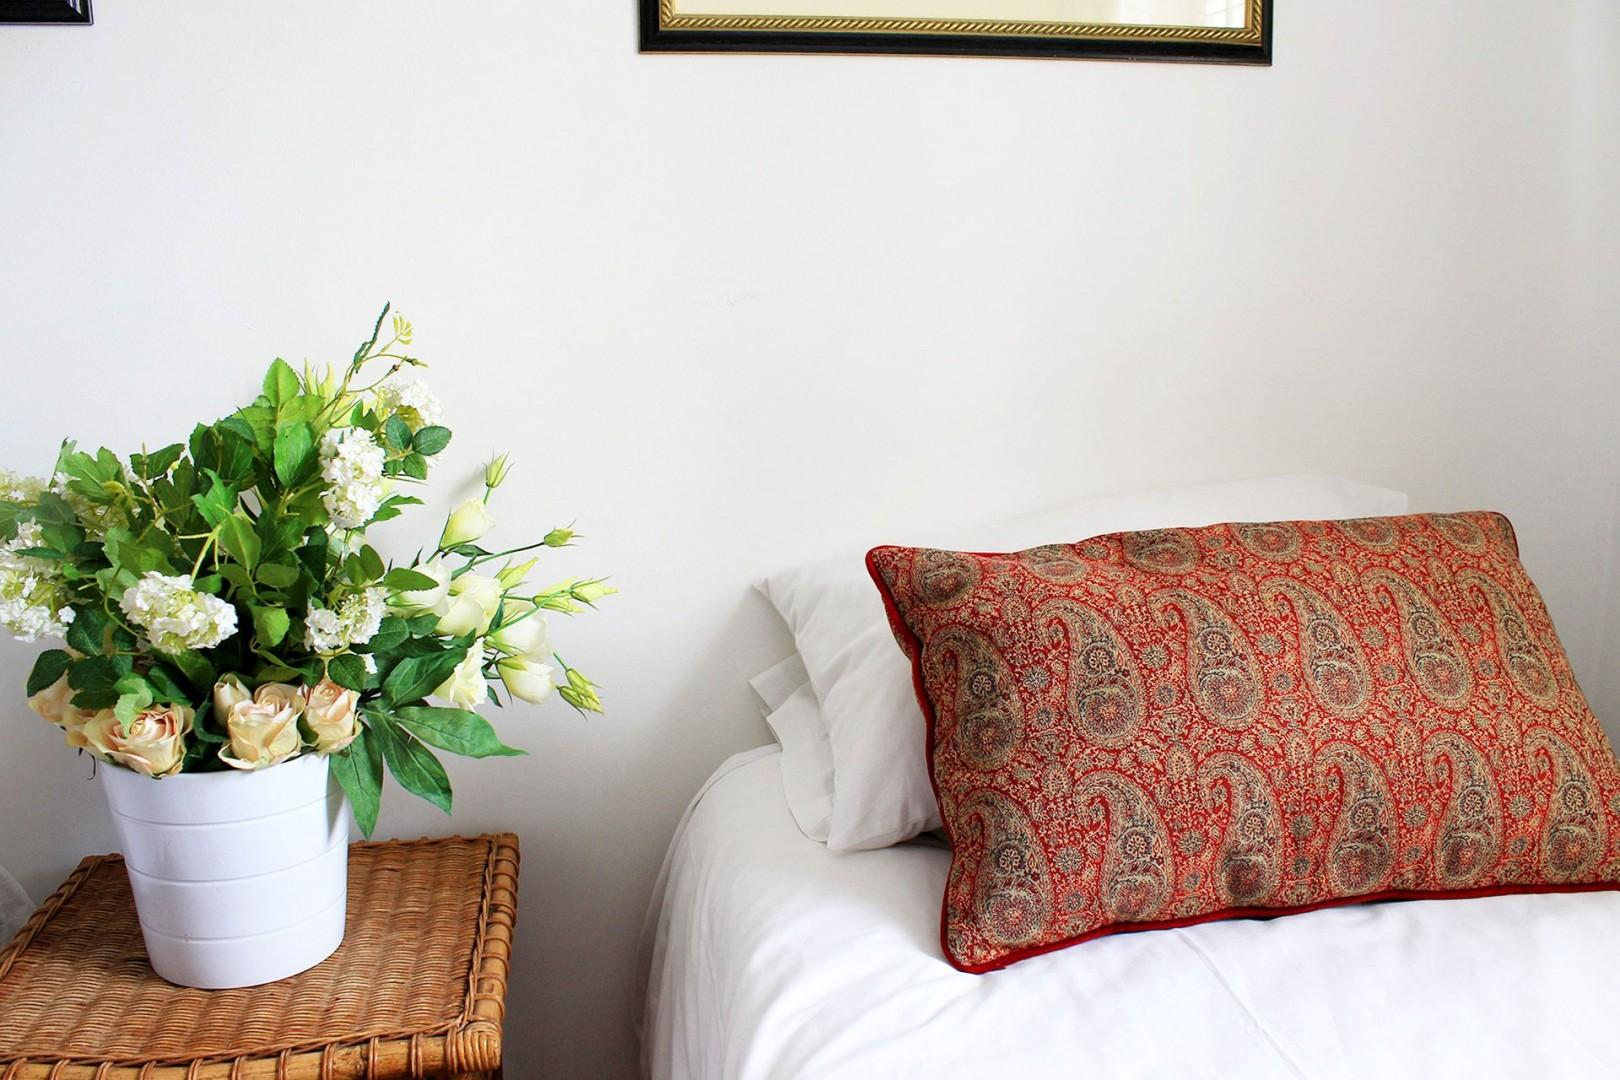 Lovely patterned cushions in the second bedroom